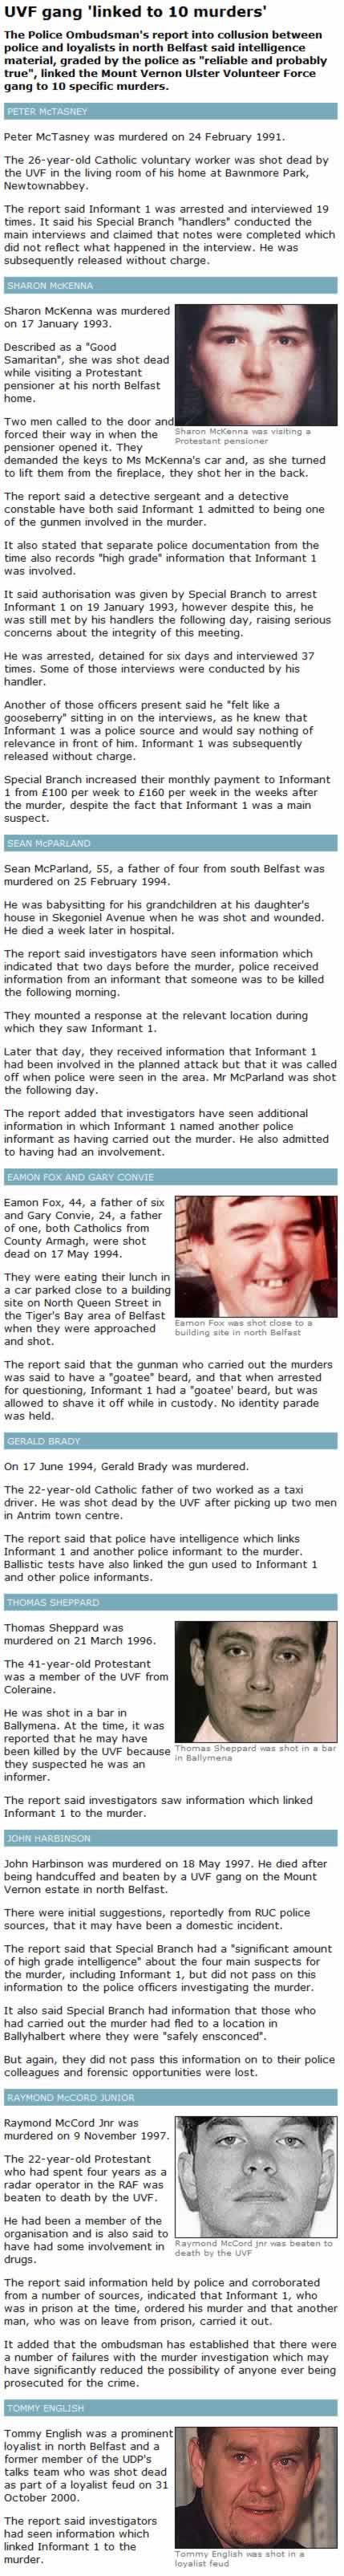 RUC/PSNI covered their agents Loyalist terrorist murderers